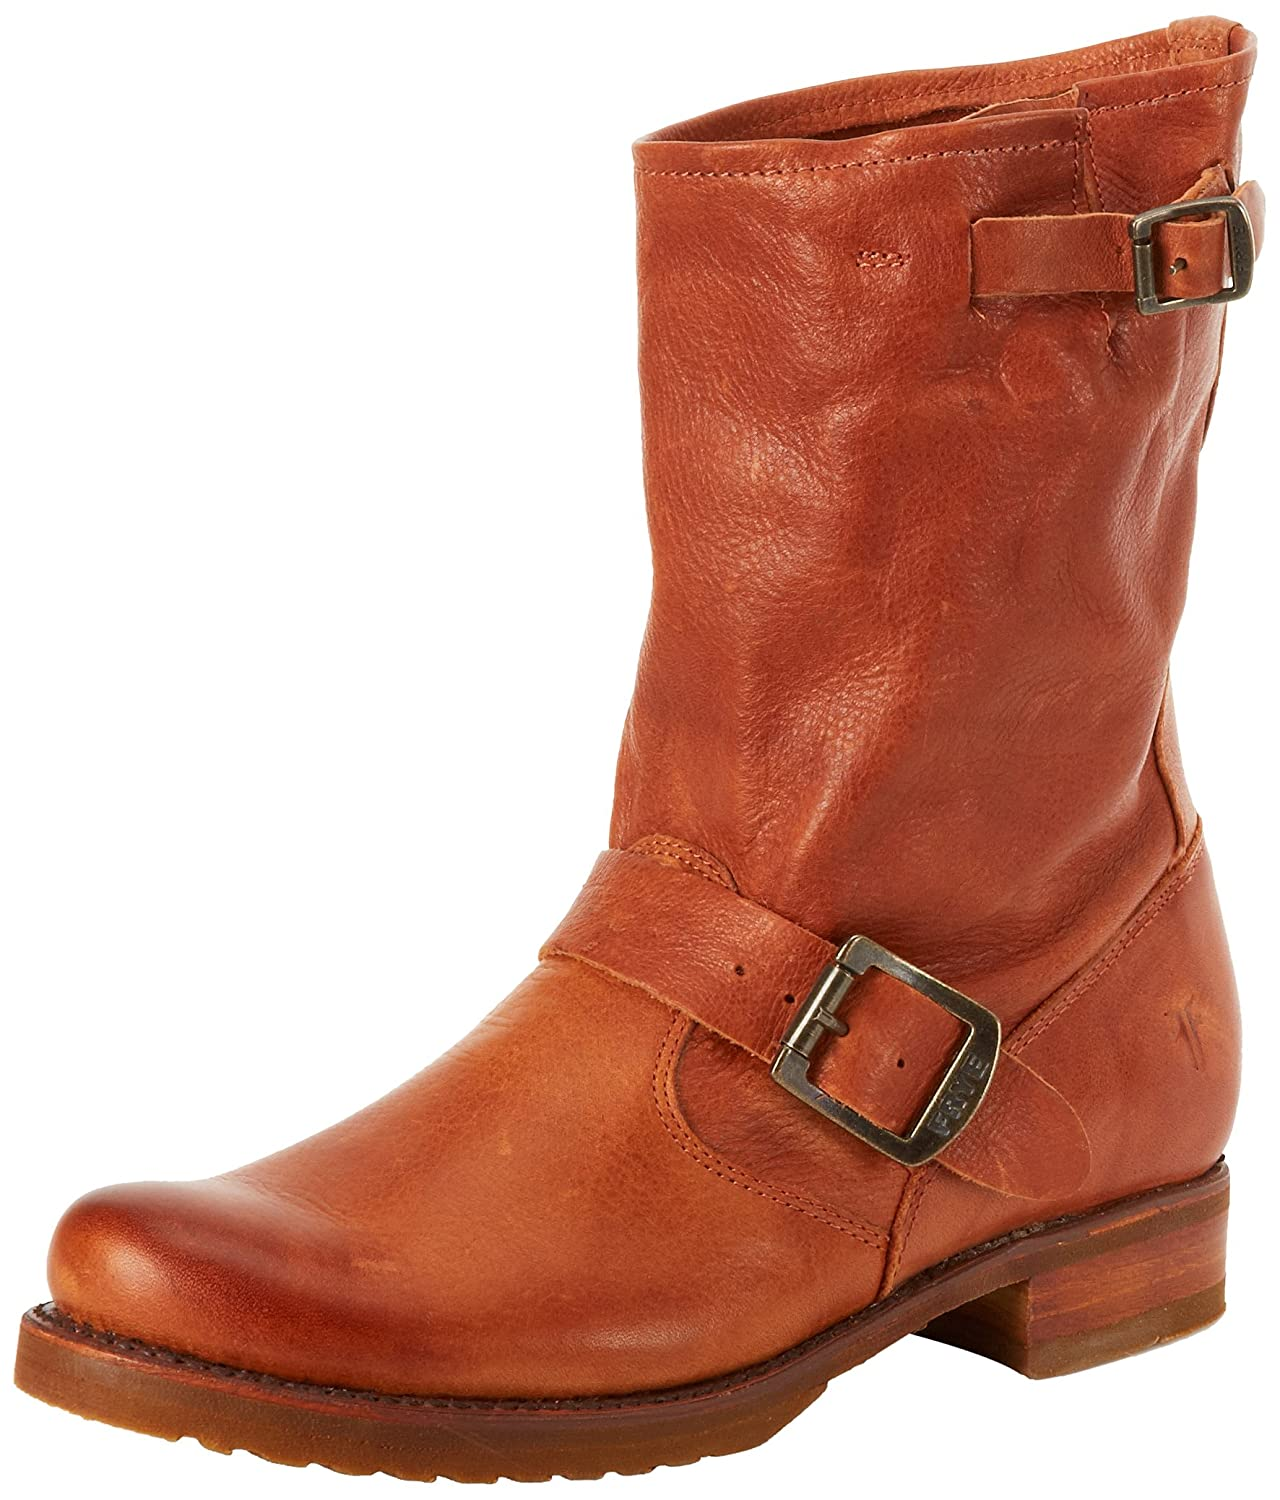 FRYE Women's Veronica Short Boot B008BUL2NK 7.5 B(M) US|Whiskey Soft Vintage Leather-76509